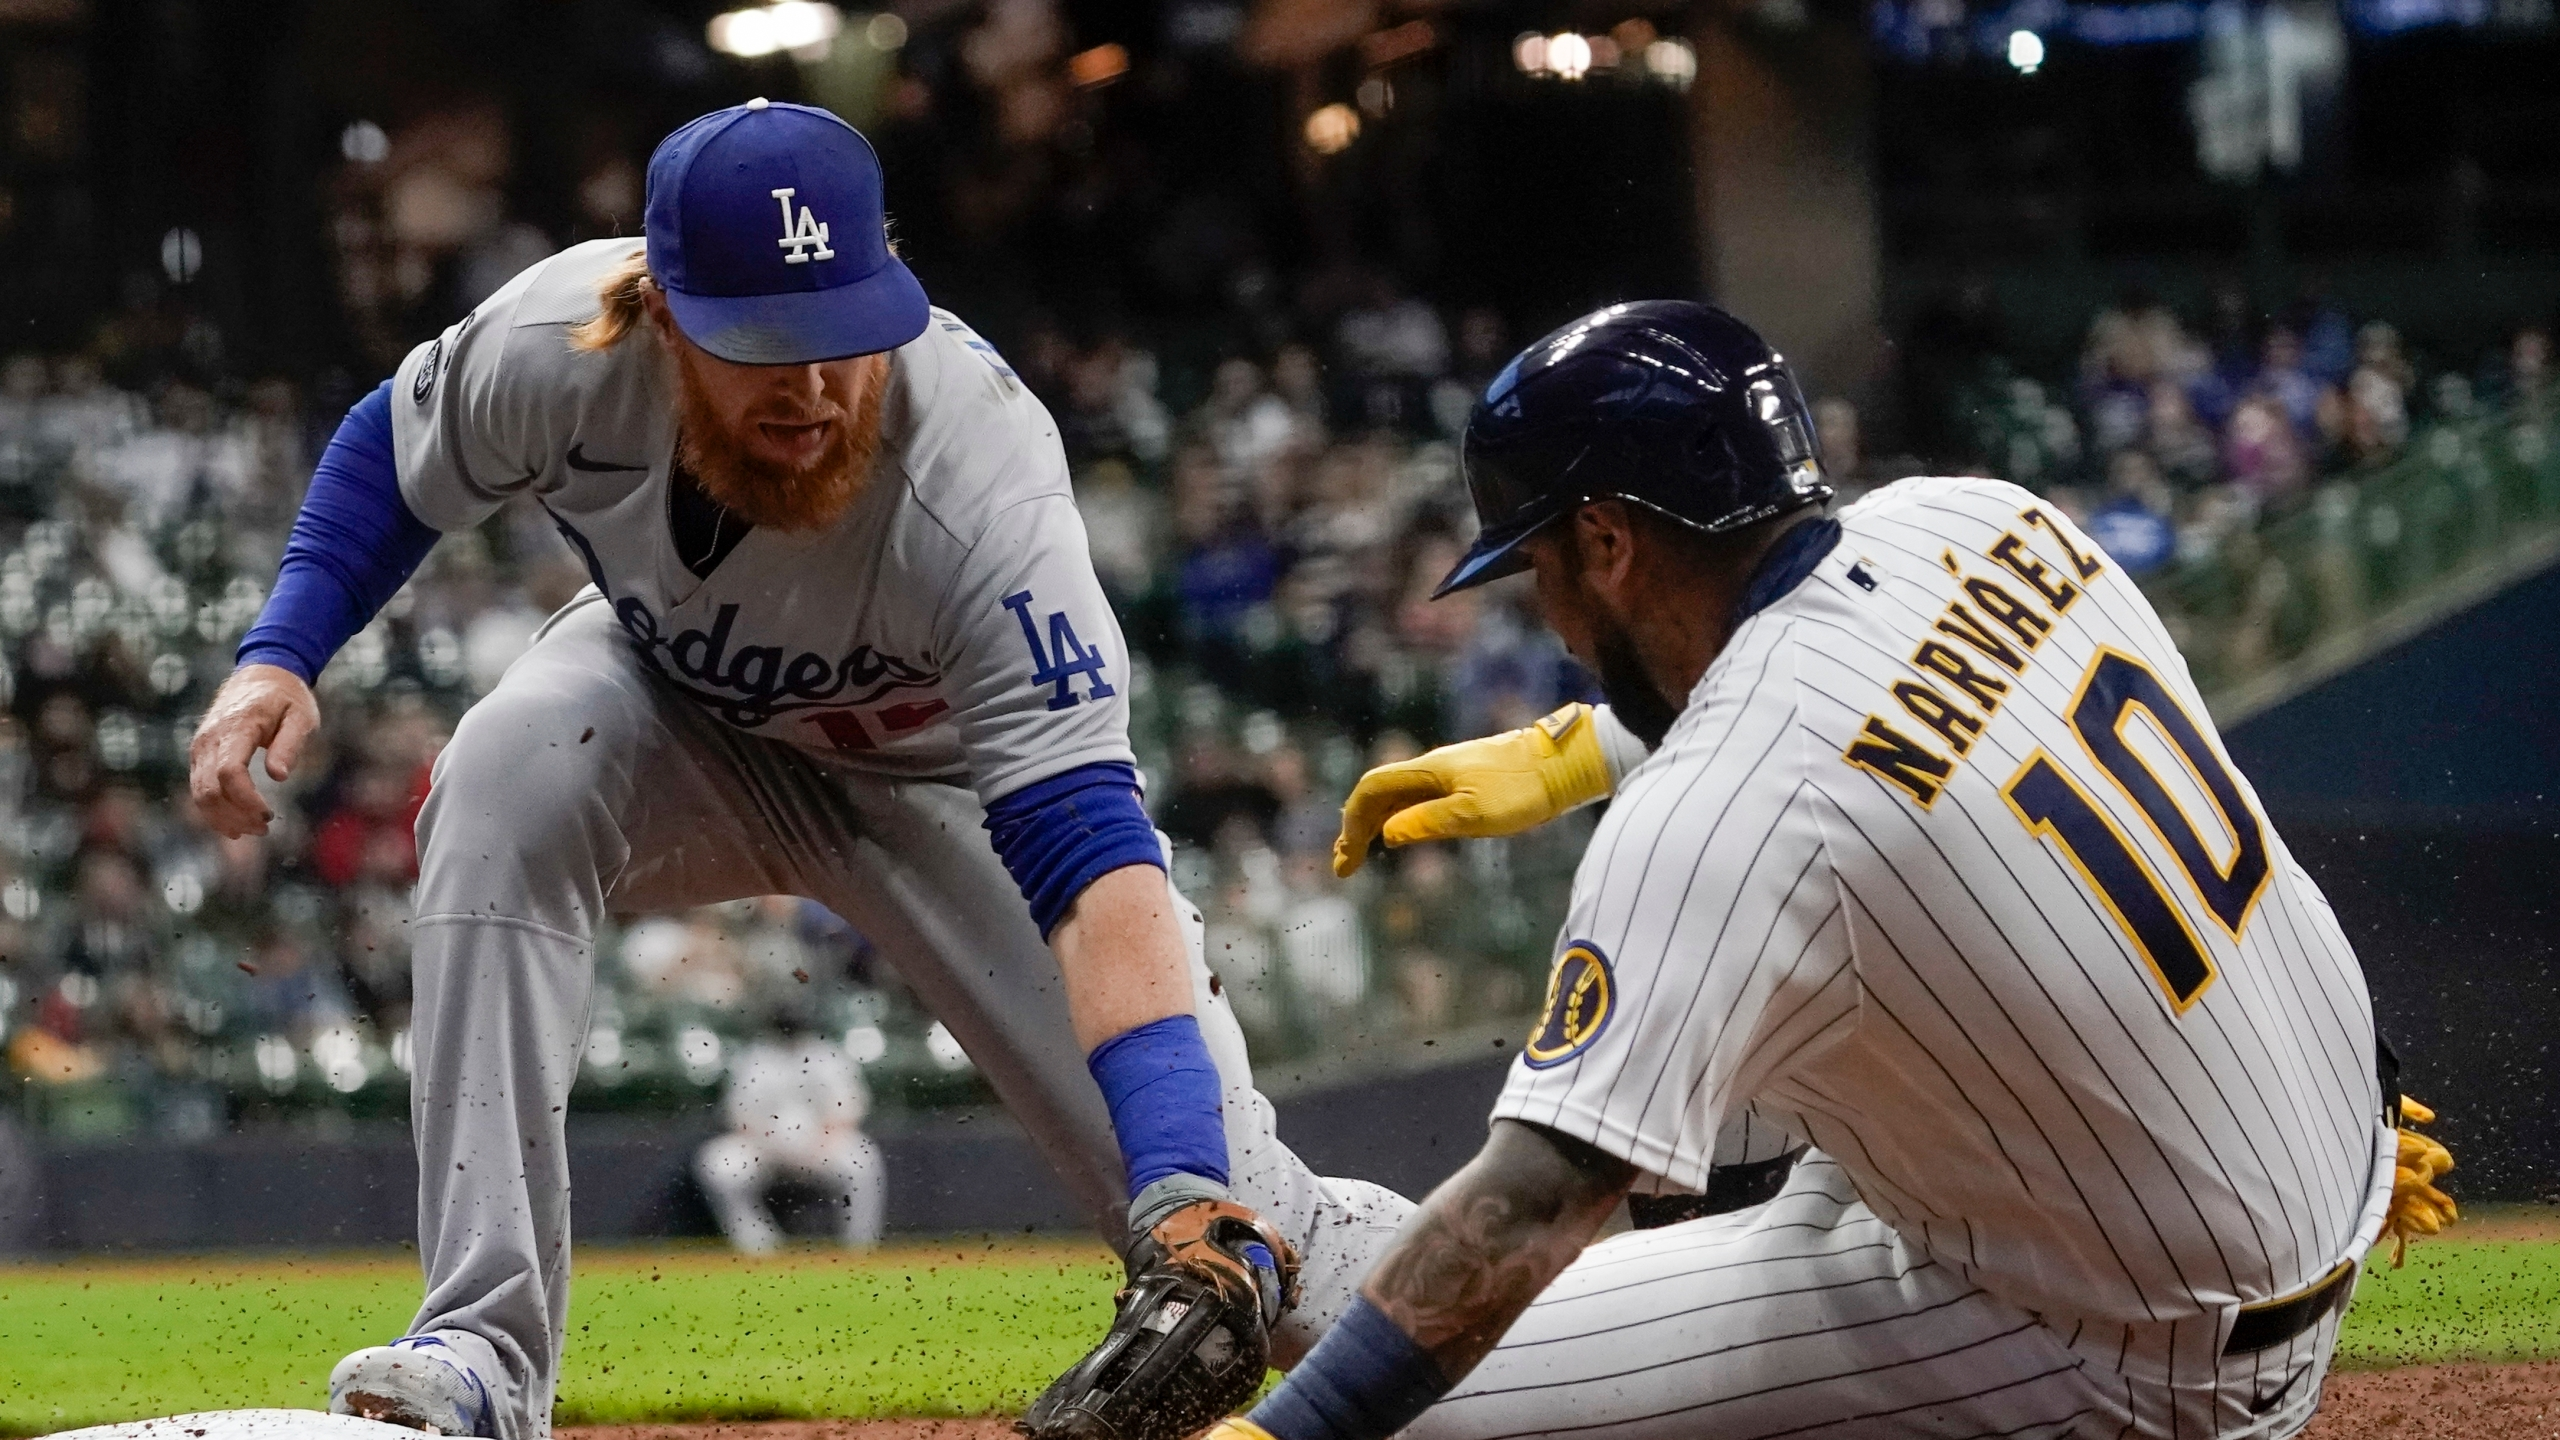 Los Angeles Dodgers' Justin Turner tags out Milwaukee Brewers' Omar Narvaez at first during the first inning of a baseball game Friday, April 30, 2021, in Milwaukee. (AP Photo/Morry Gash)